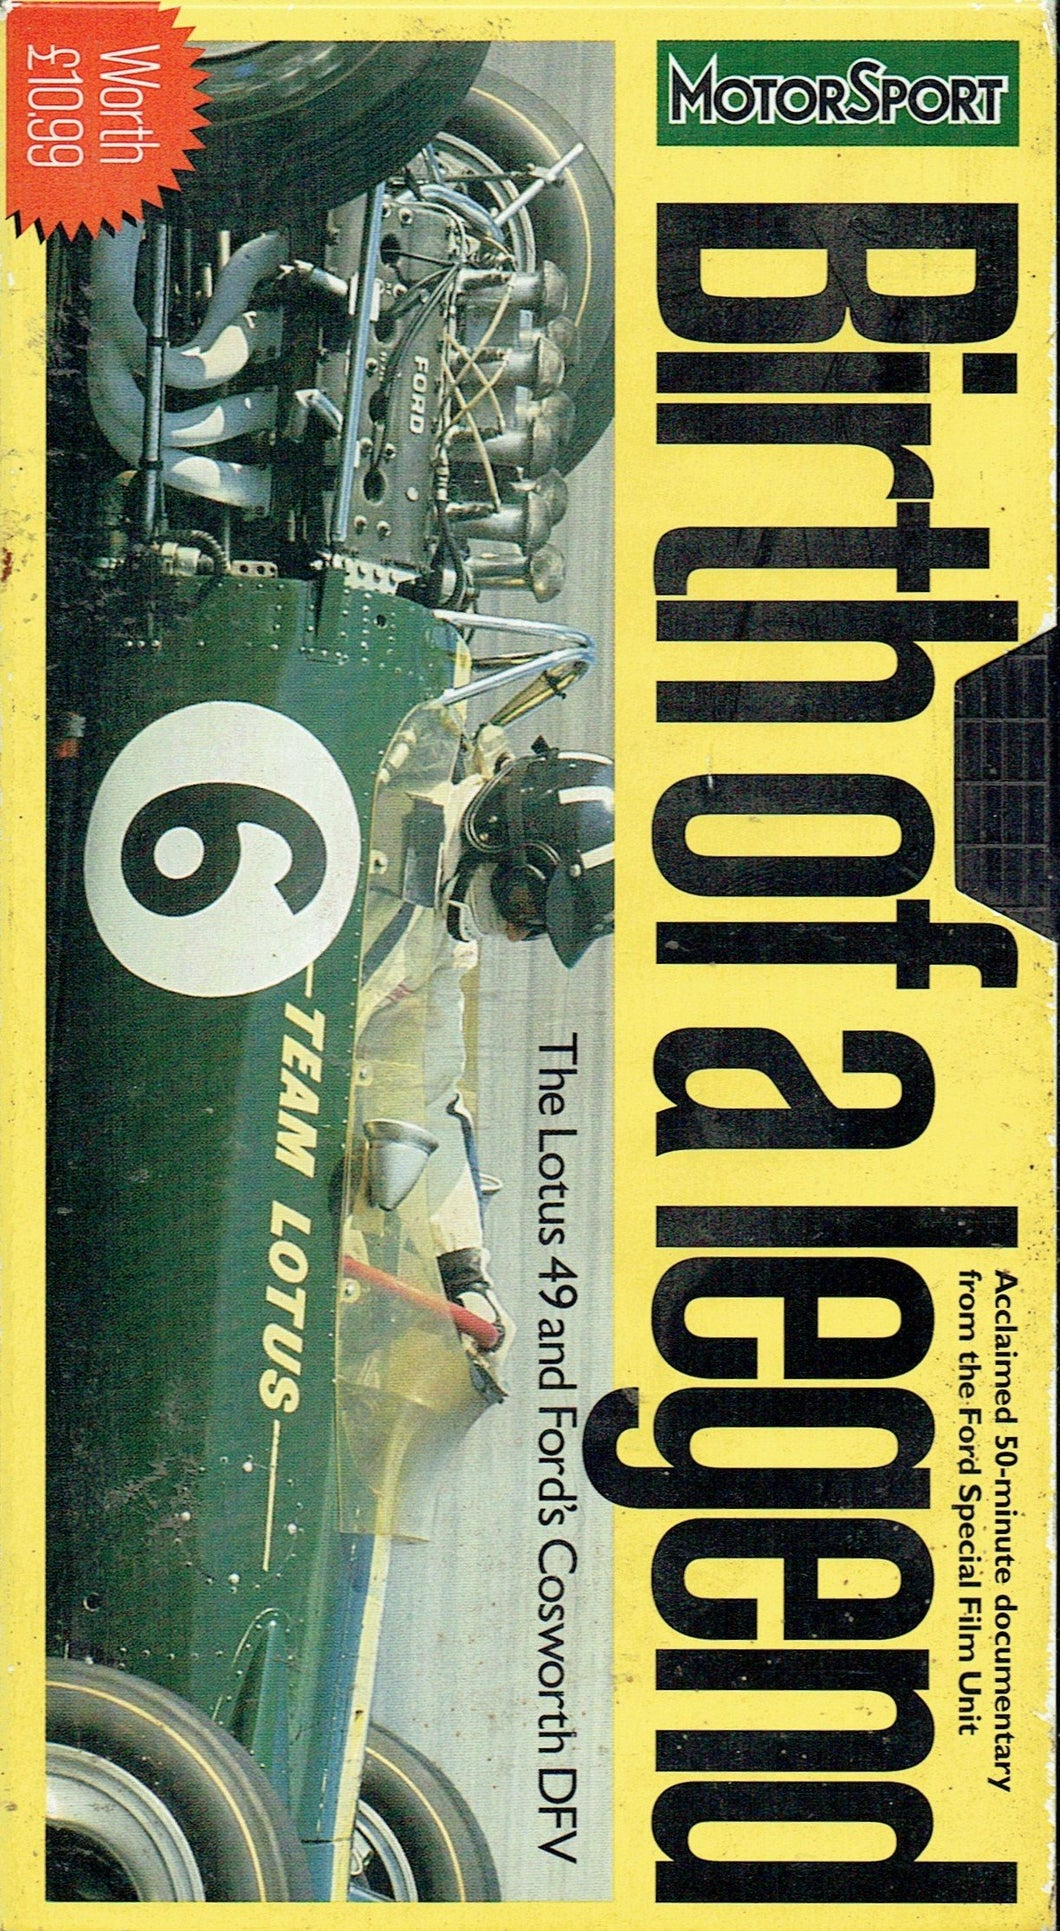 Birth of a Legend - The Lotus 49 and Ford's Cosworth DFV